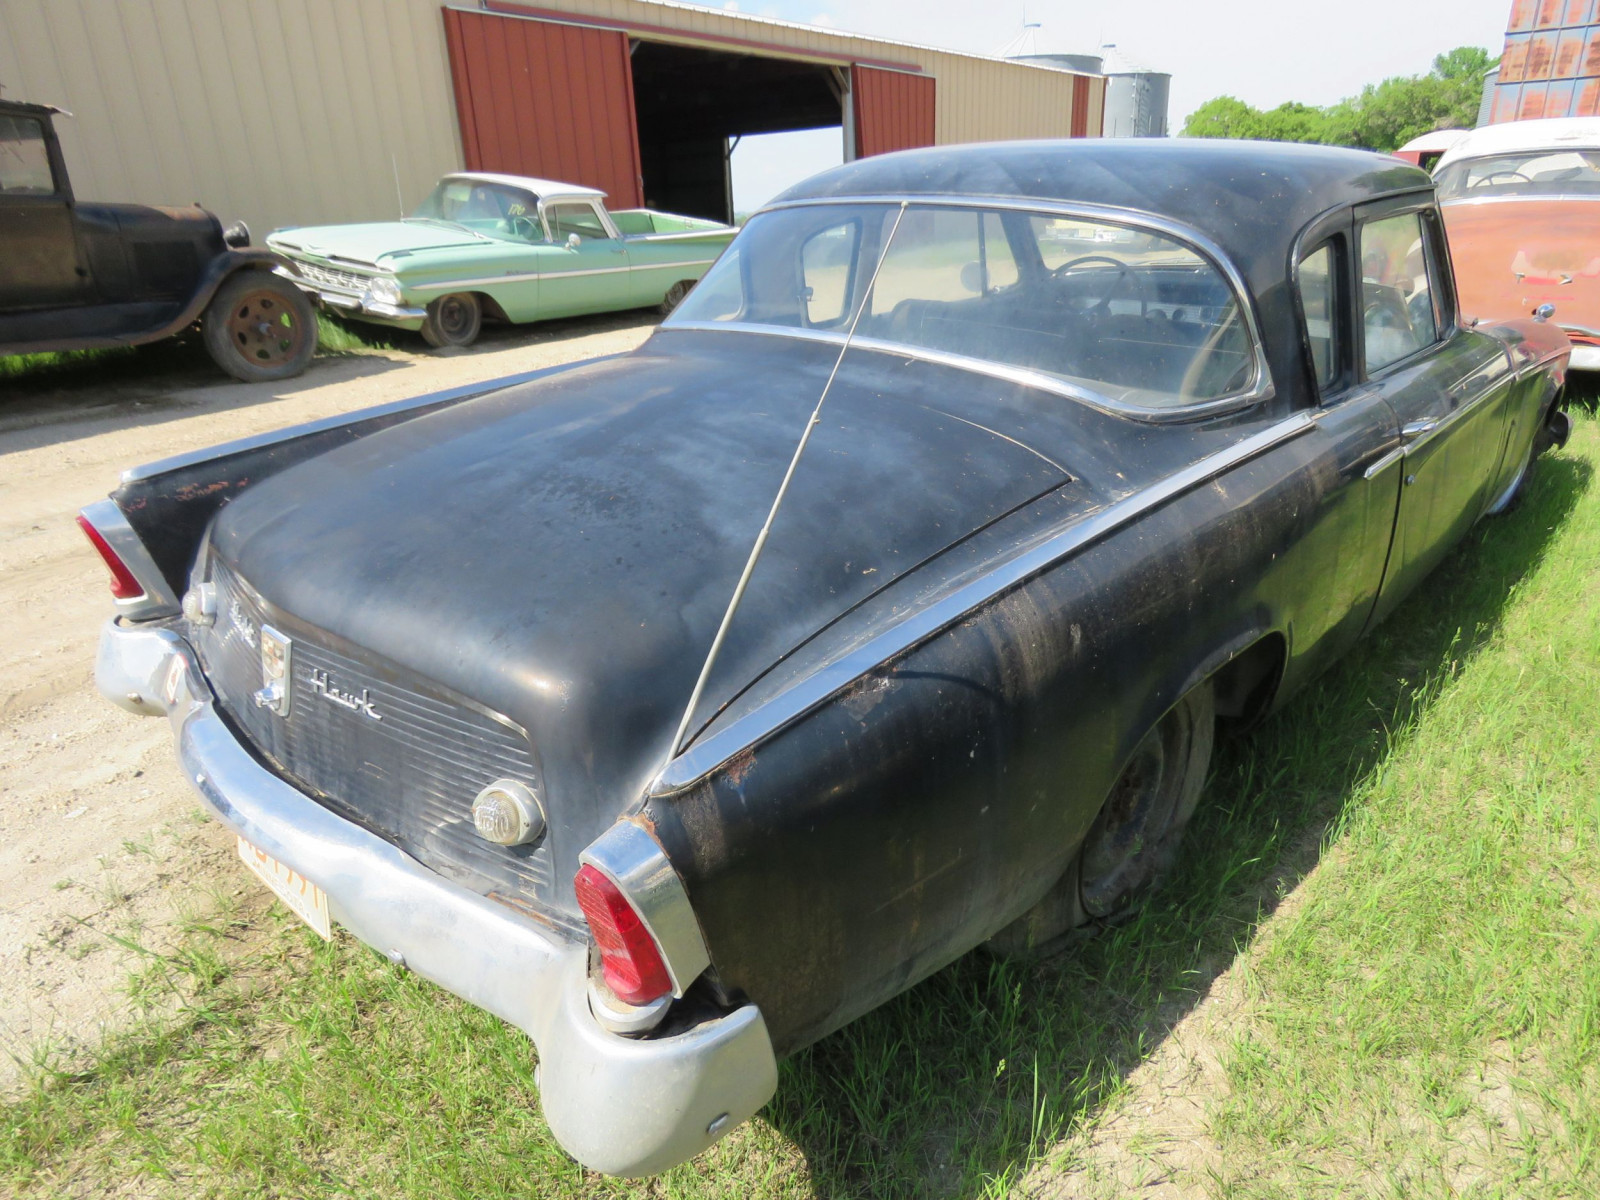 1956 Studebaker Night Hawk Coupe G1364140 - Image 5